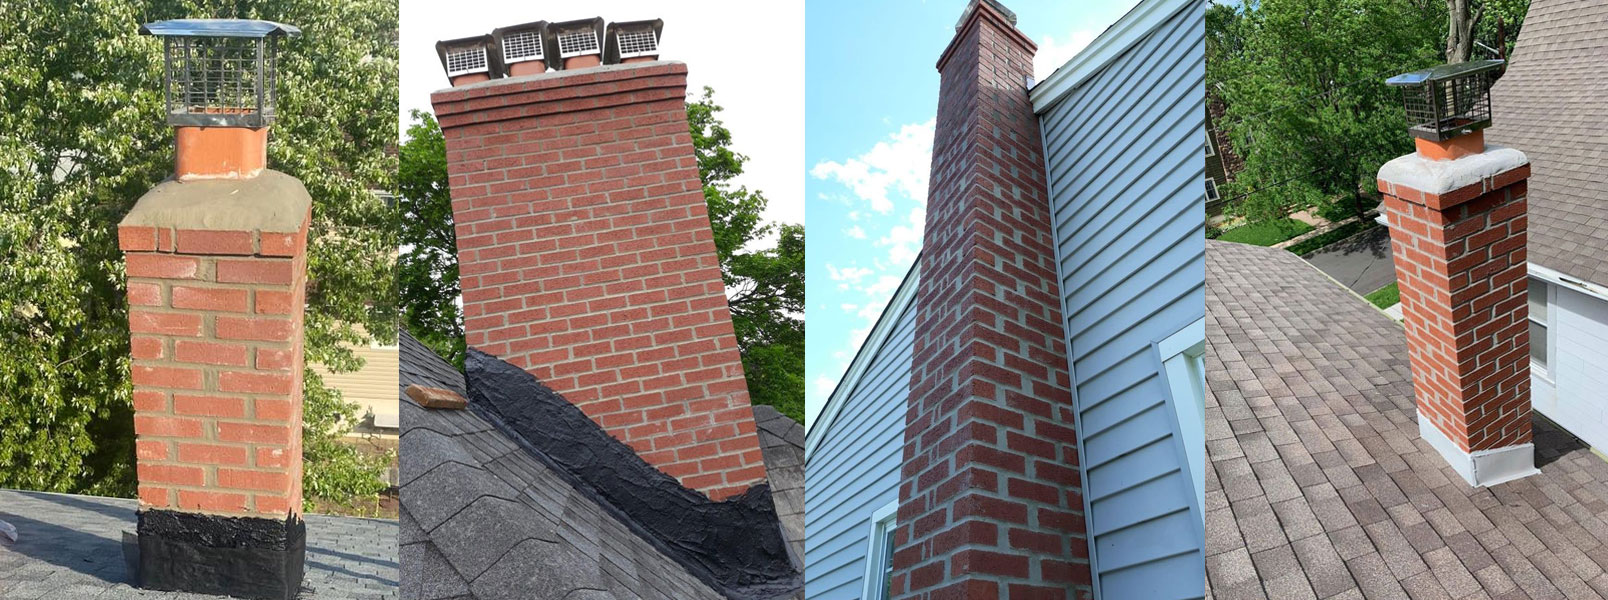 Chimney Repair Near Ho-Ho-Kus NJ